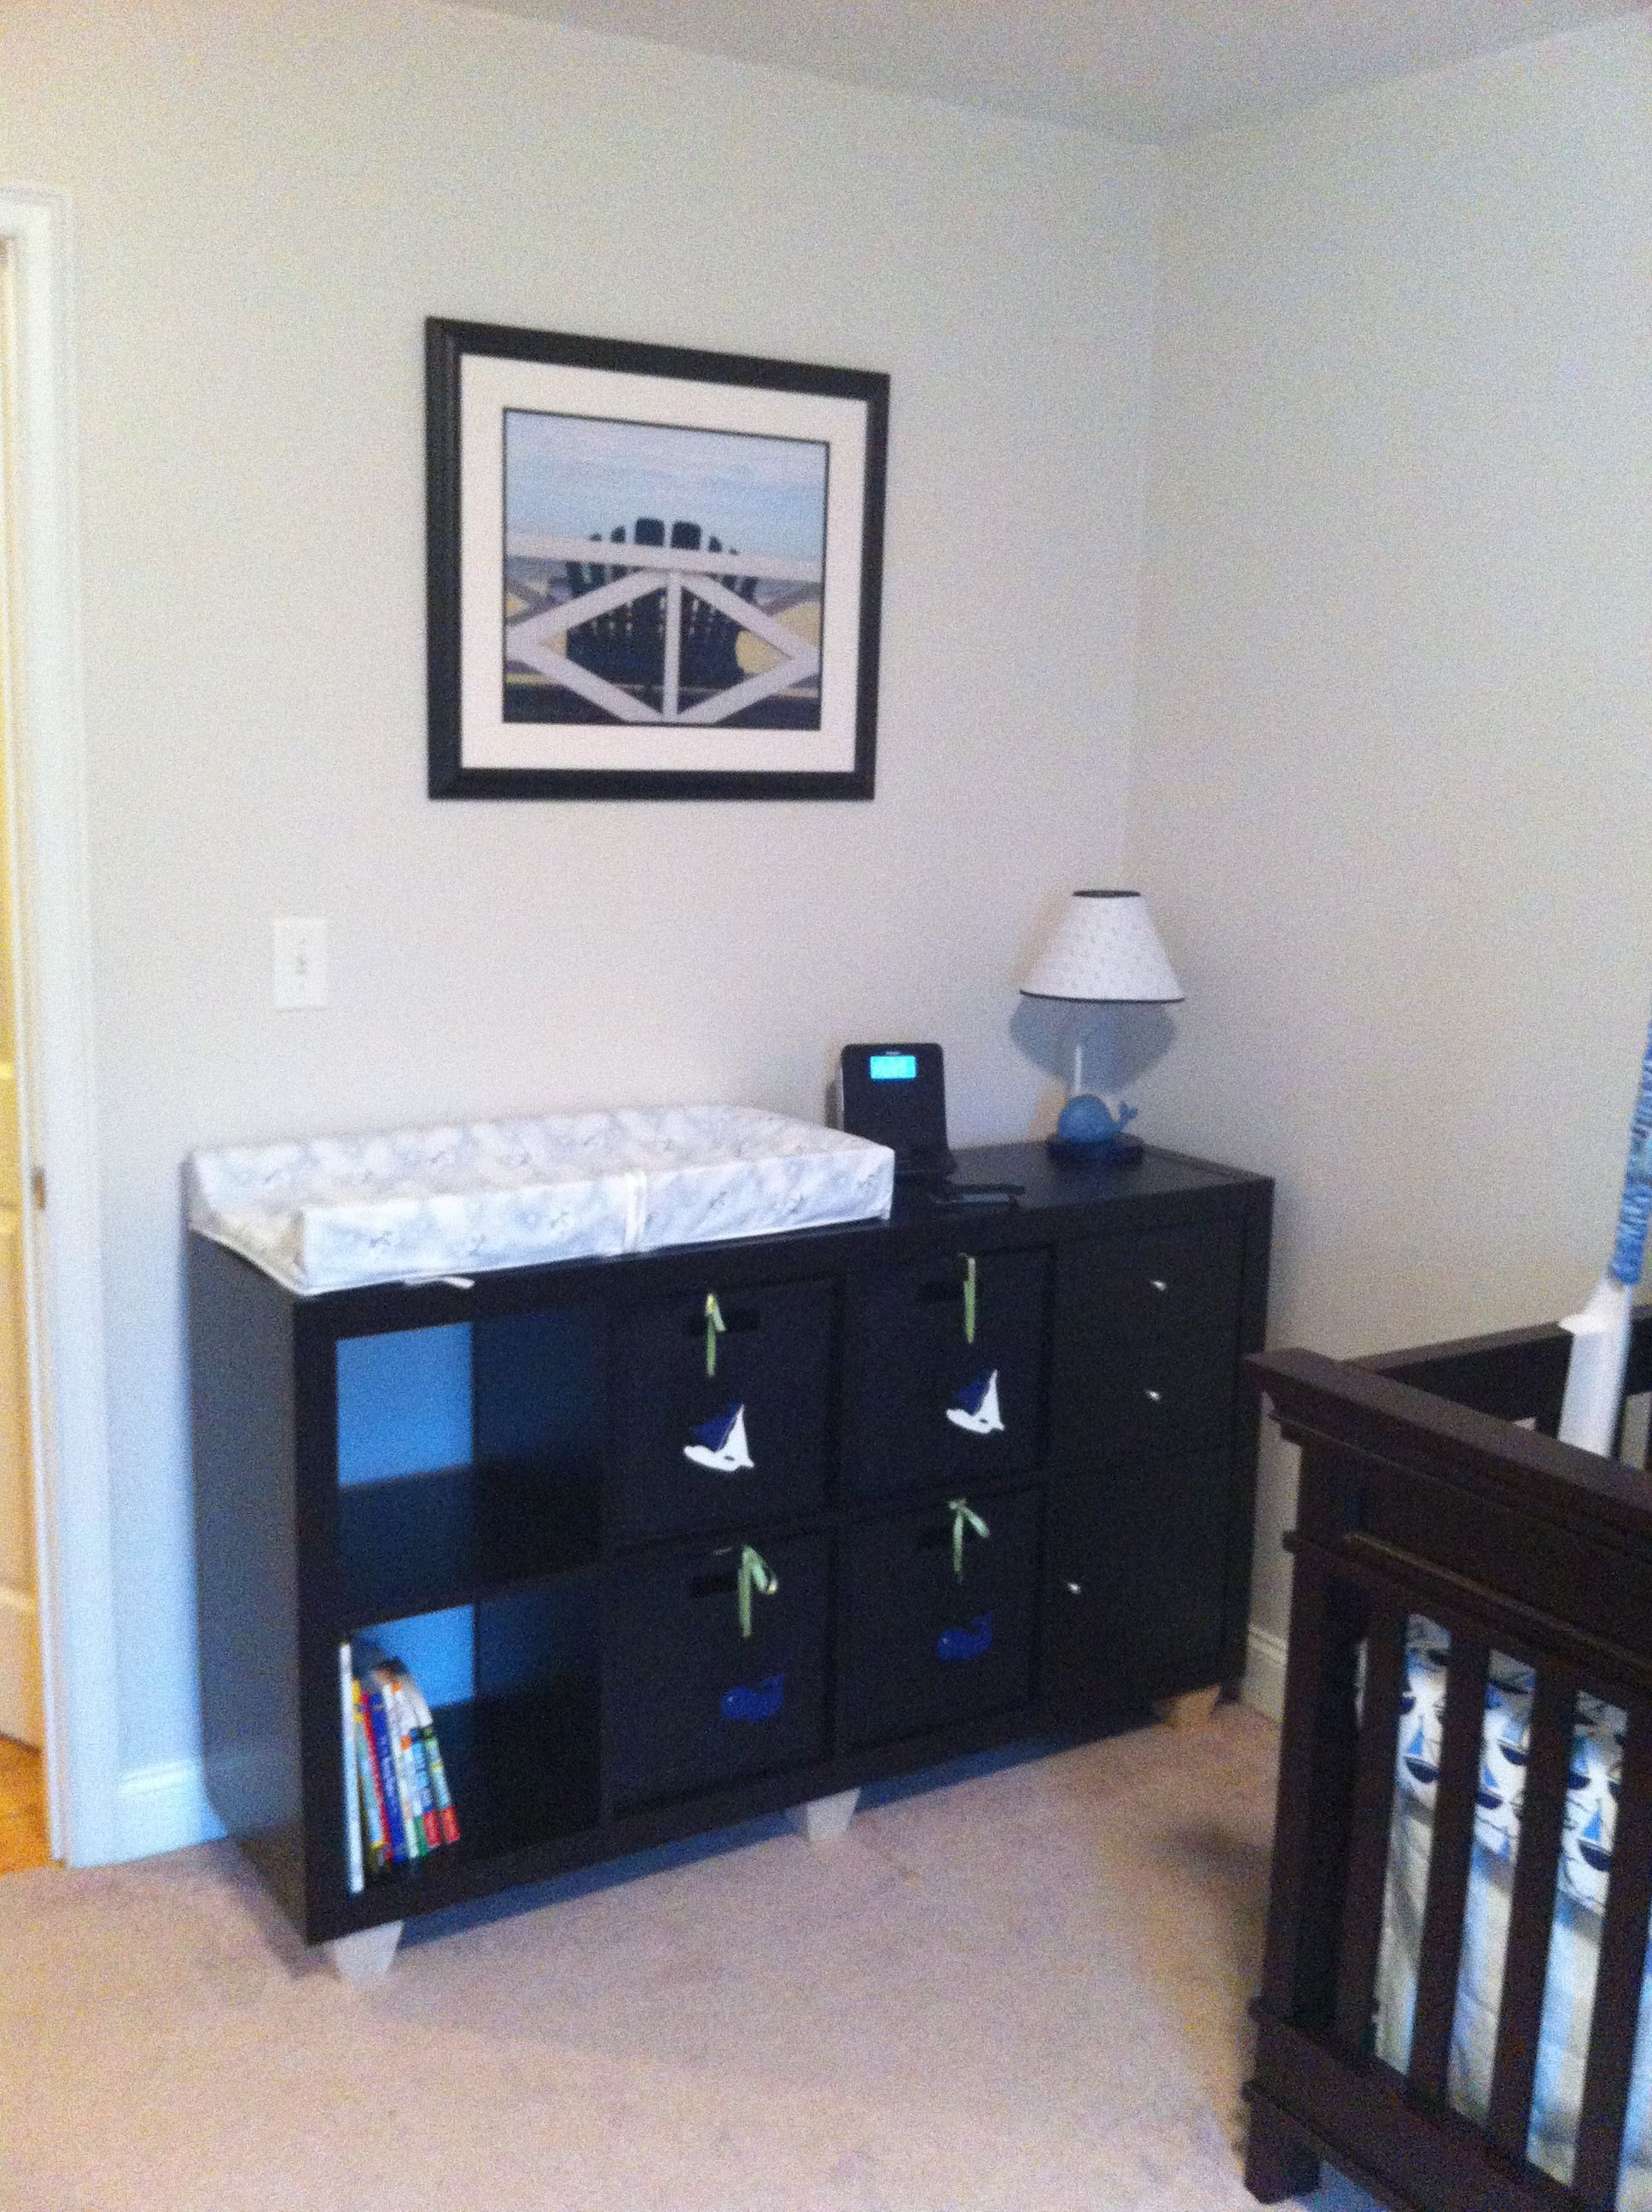 Ikea Cube Storage As Our Changing Table Cube Storage Bedroom Cube Storage Ikea Cubes